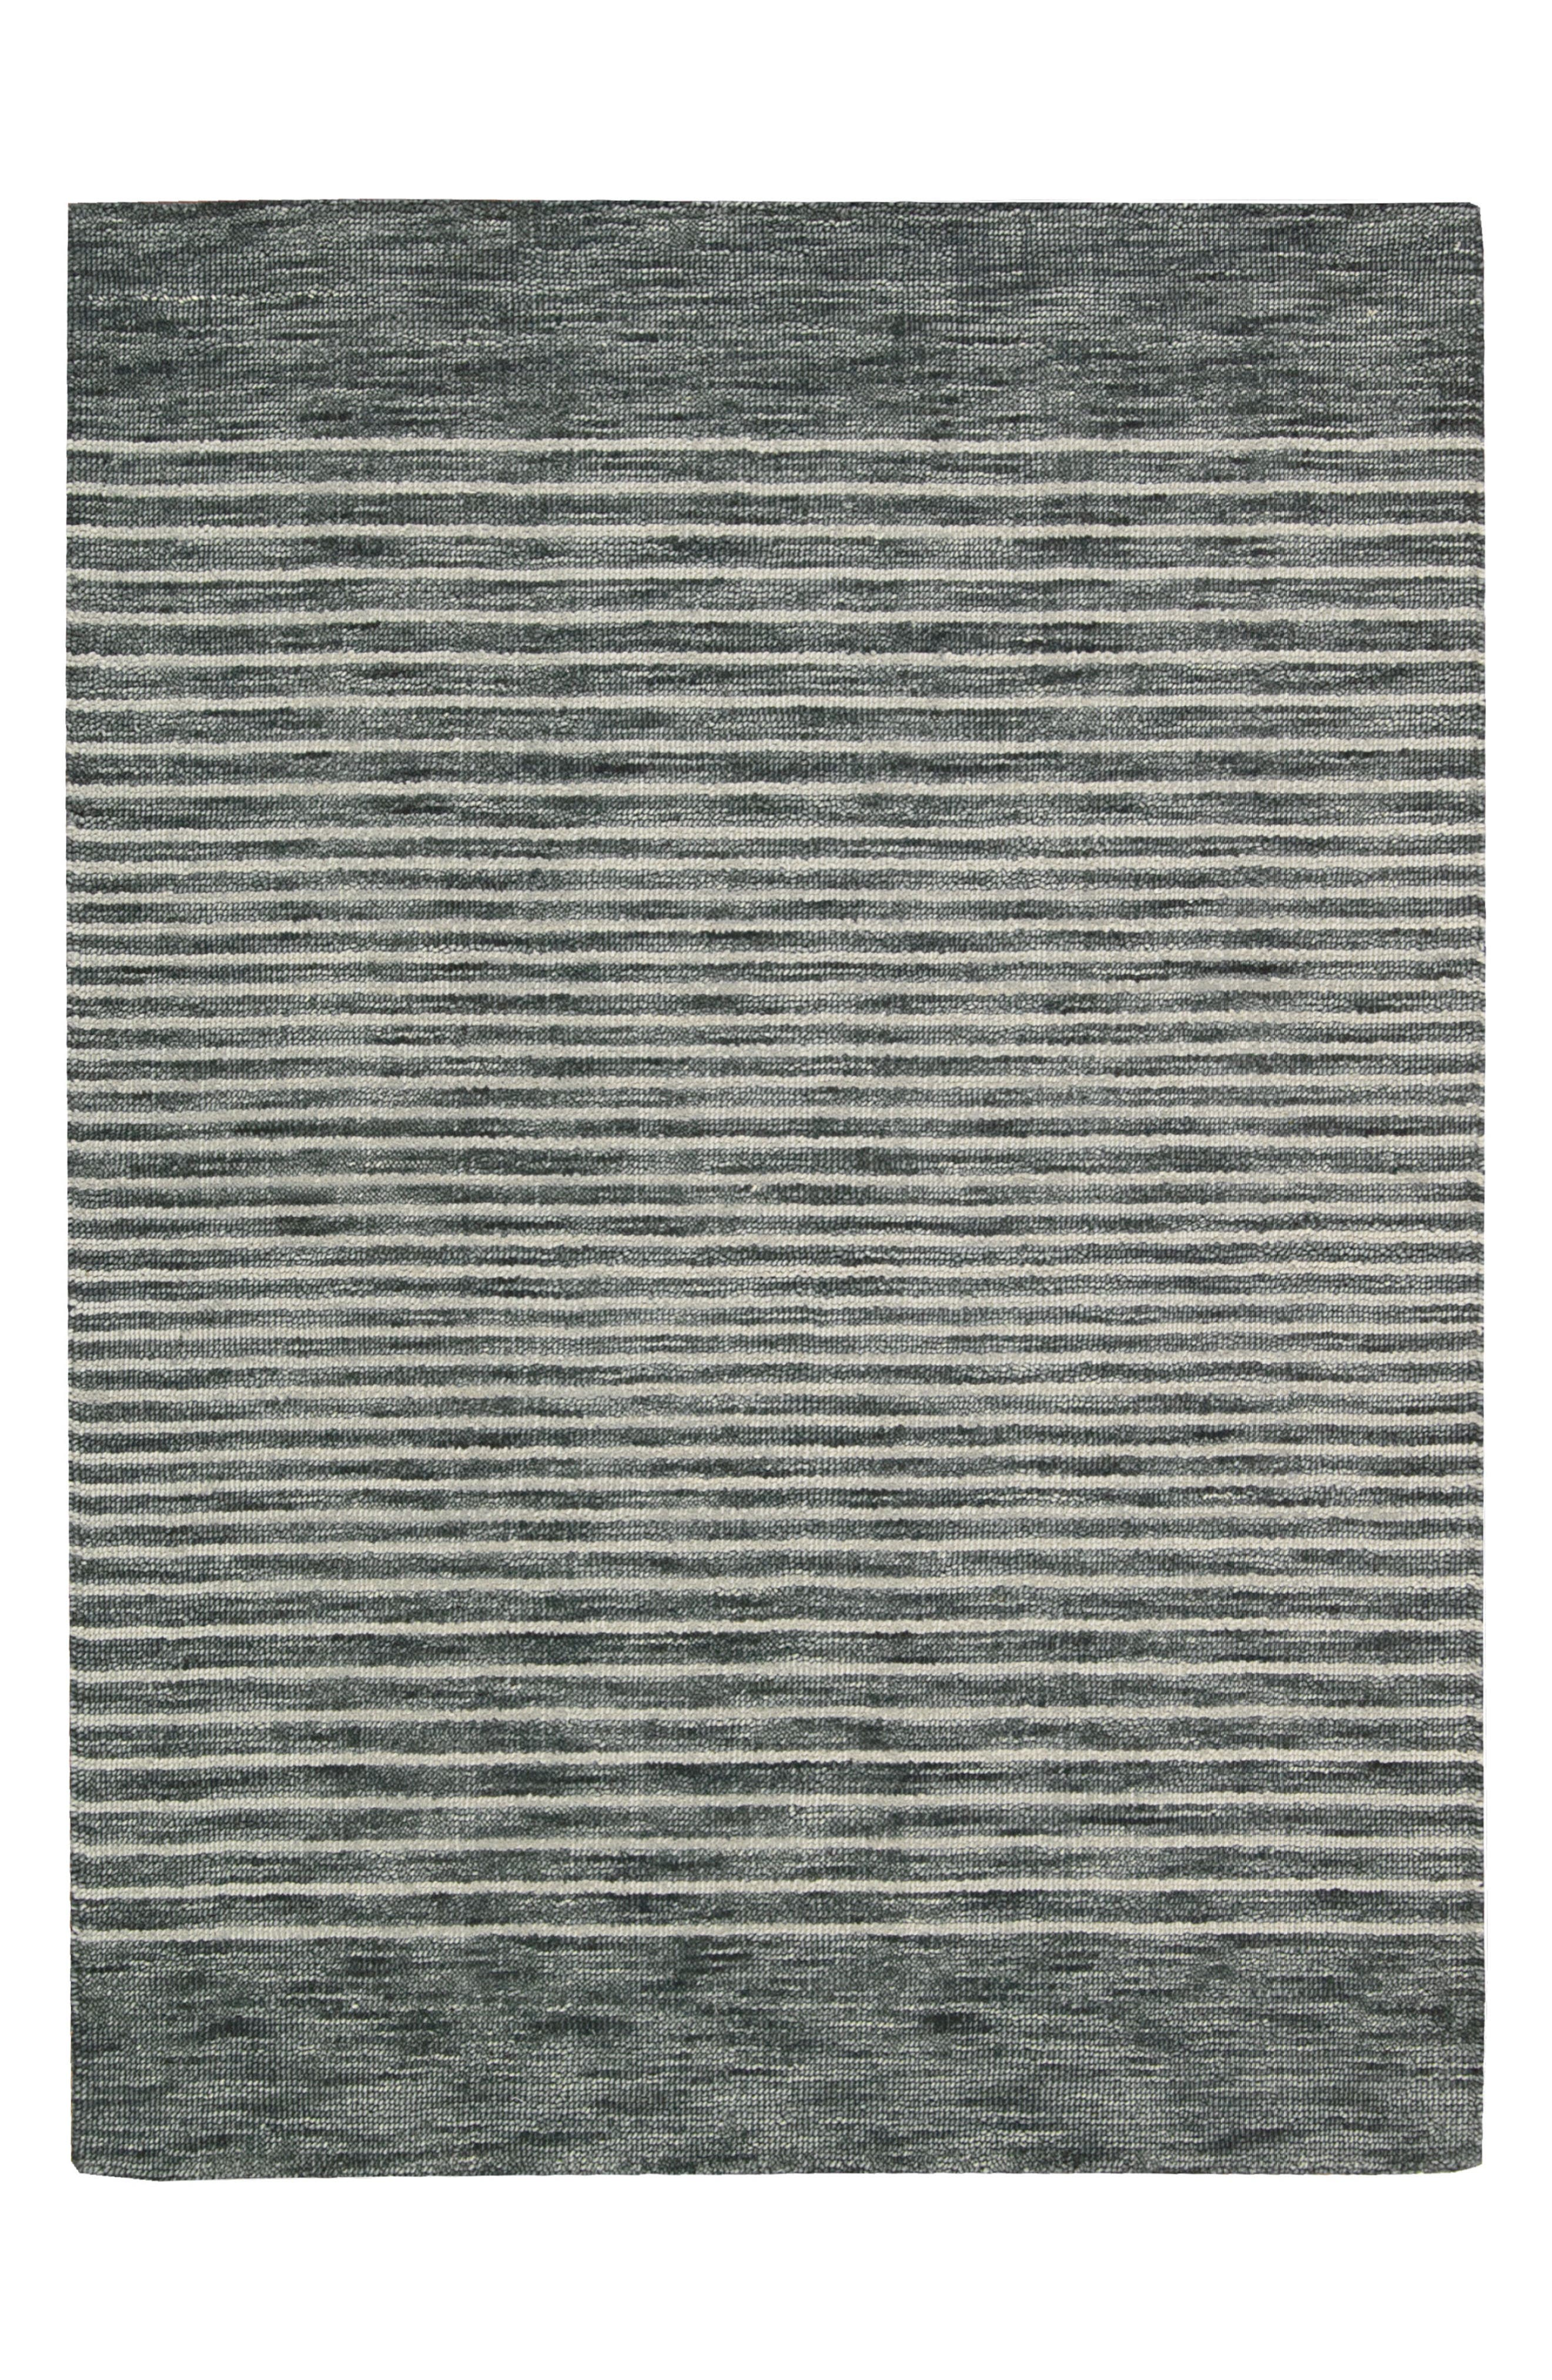 Tundra Handwoven Area Rug,                         Main,                         color, 030